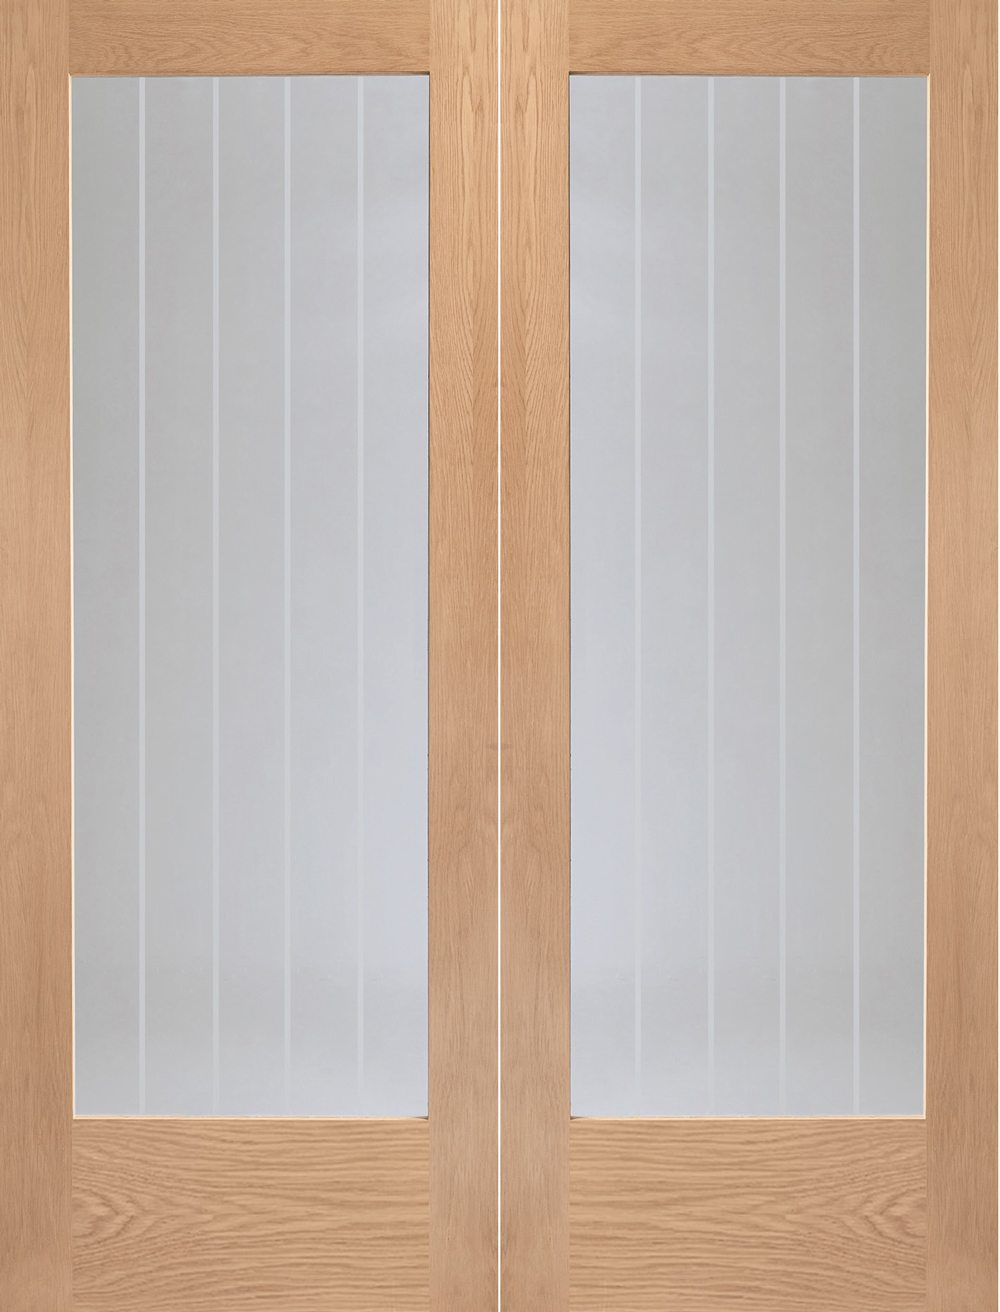 sale retailer 44419 6bc3e Suffolk Oak Rebated Door Pair with Clear Etched Glass